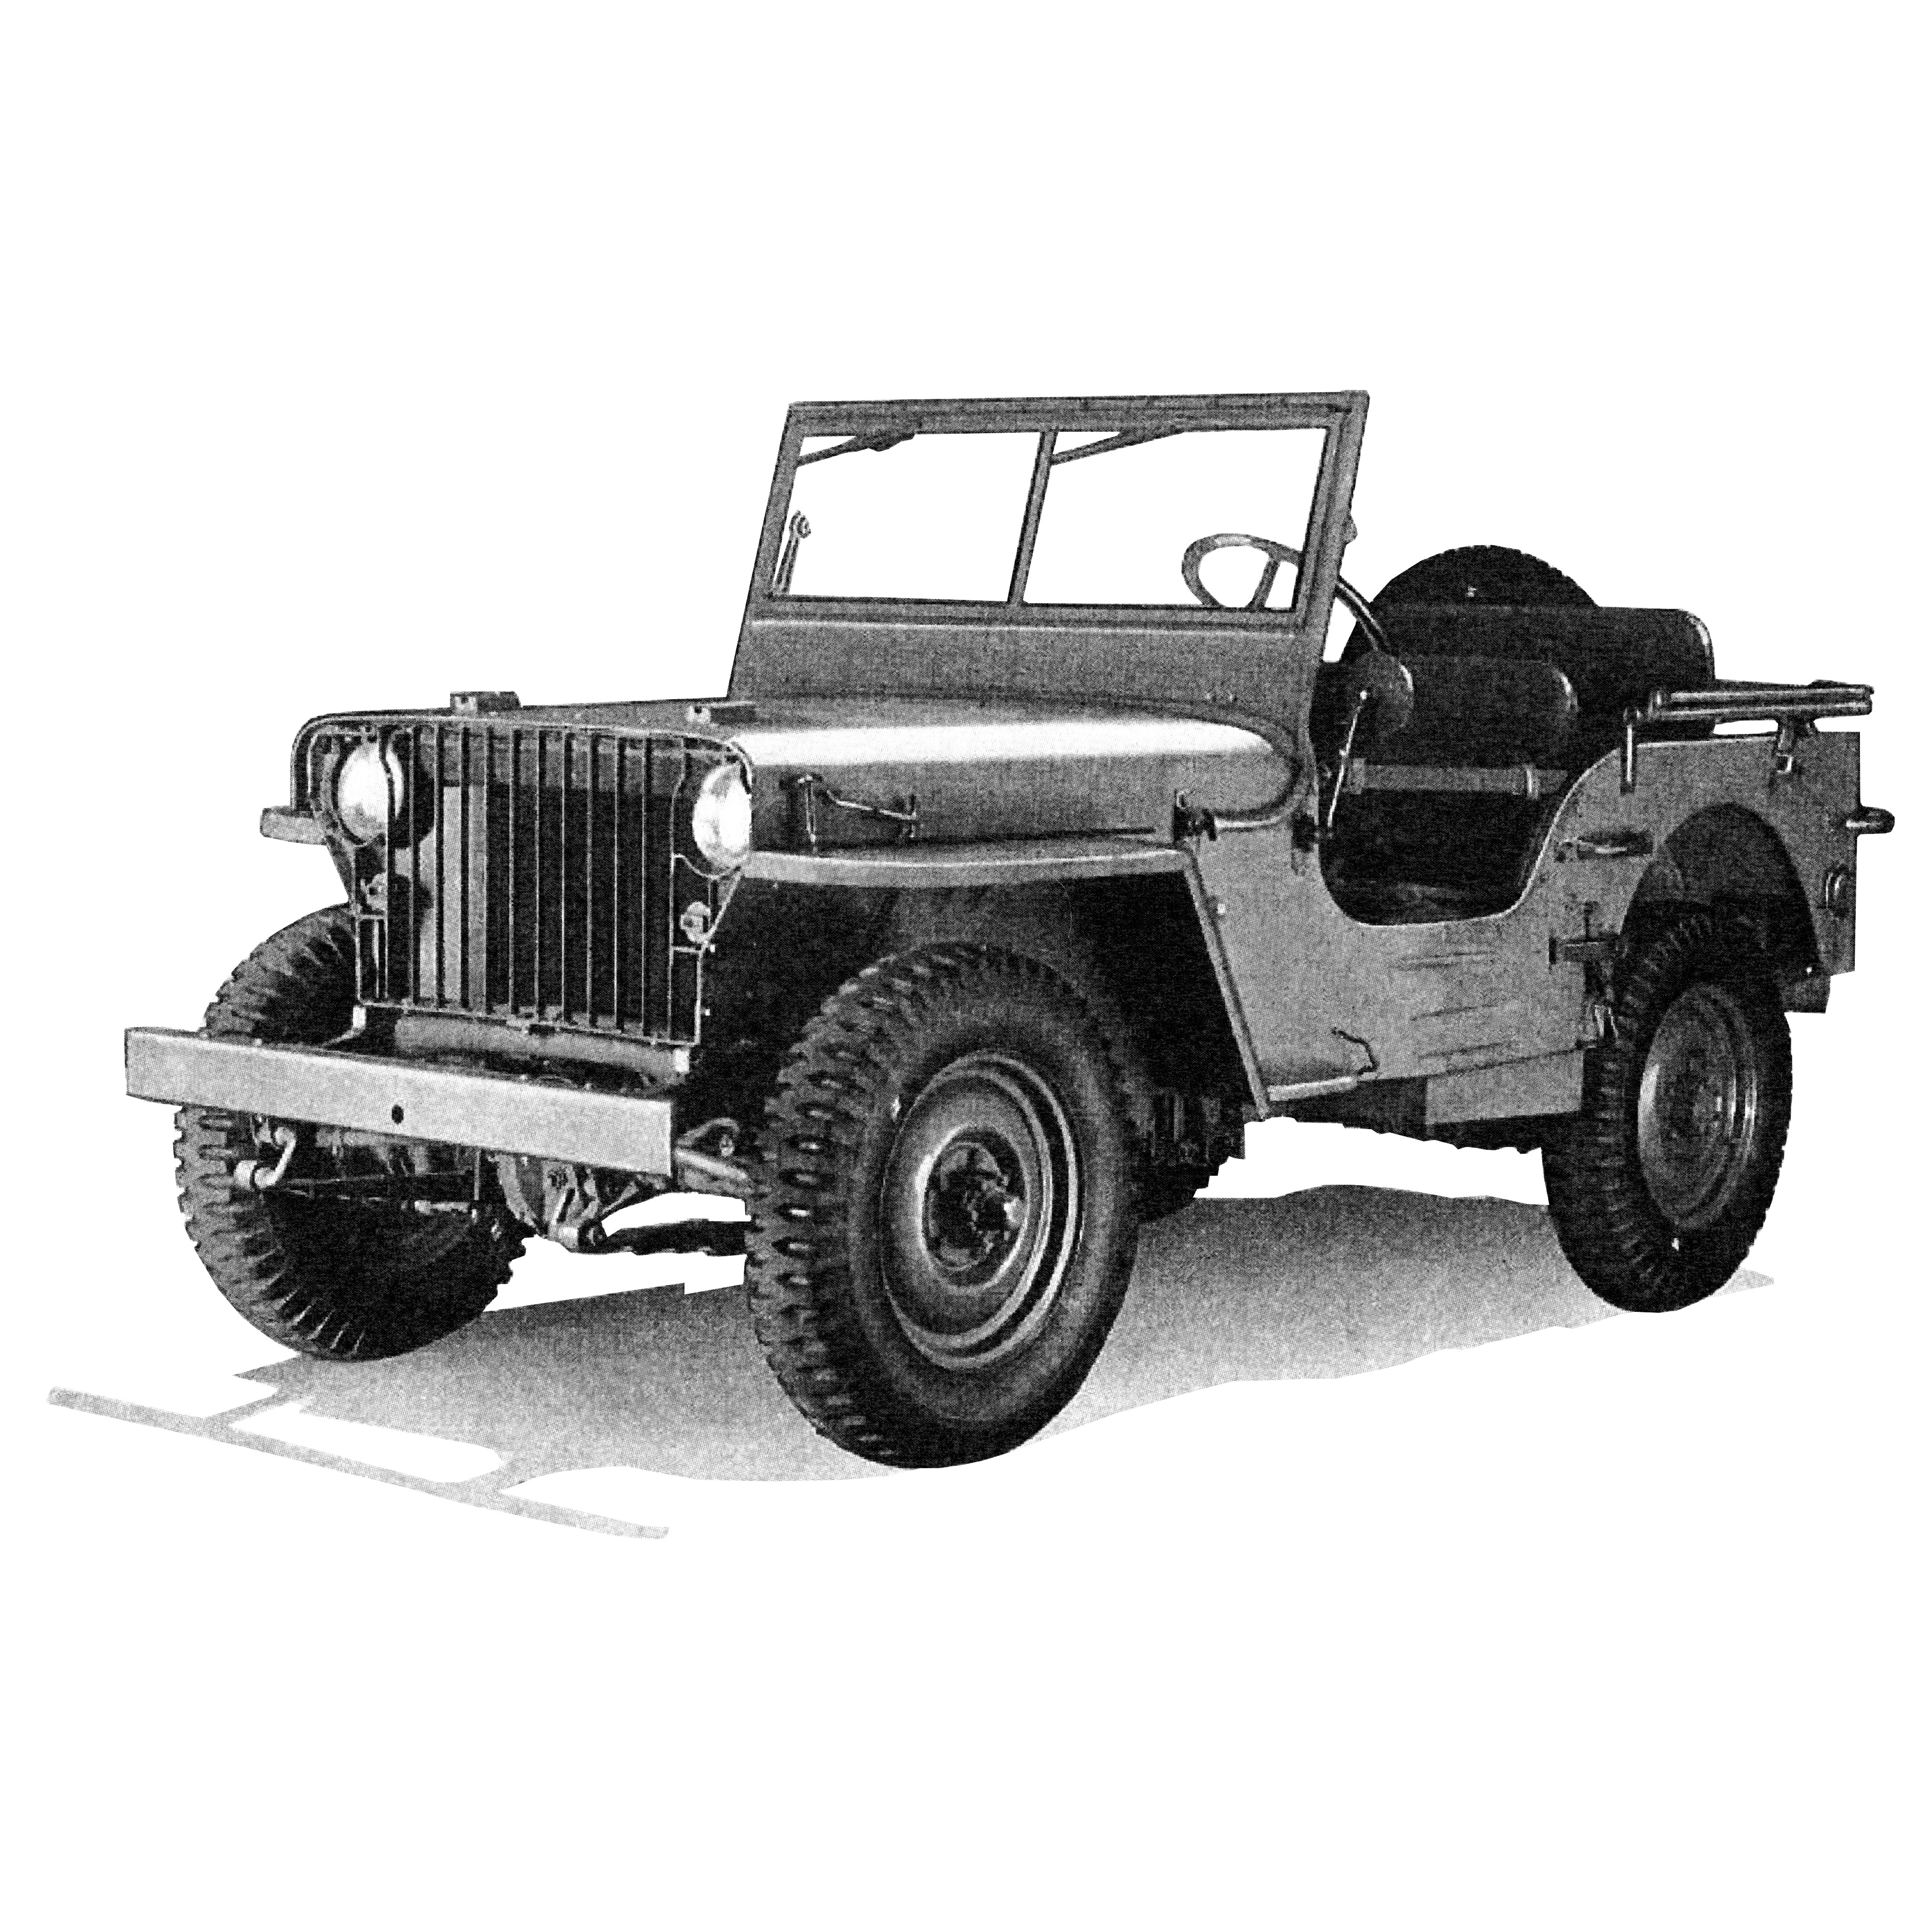 Fabulous 1947 Cj2A Wiring Size In Addition 1951 Willys M38 Military Jeep Wiring Cloud Uslyletkolfr09Org